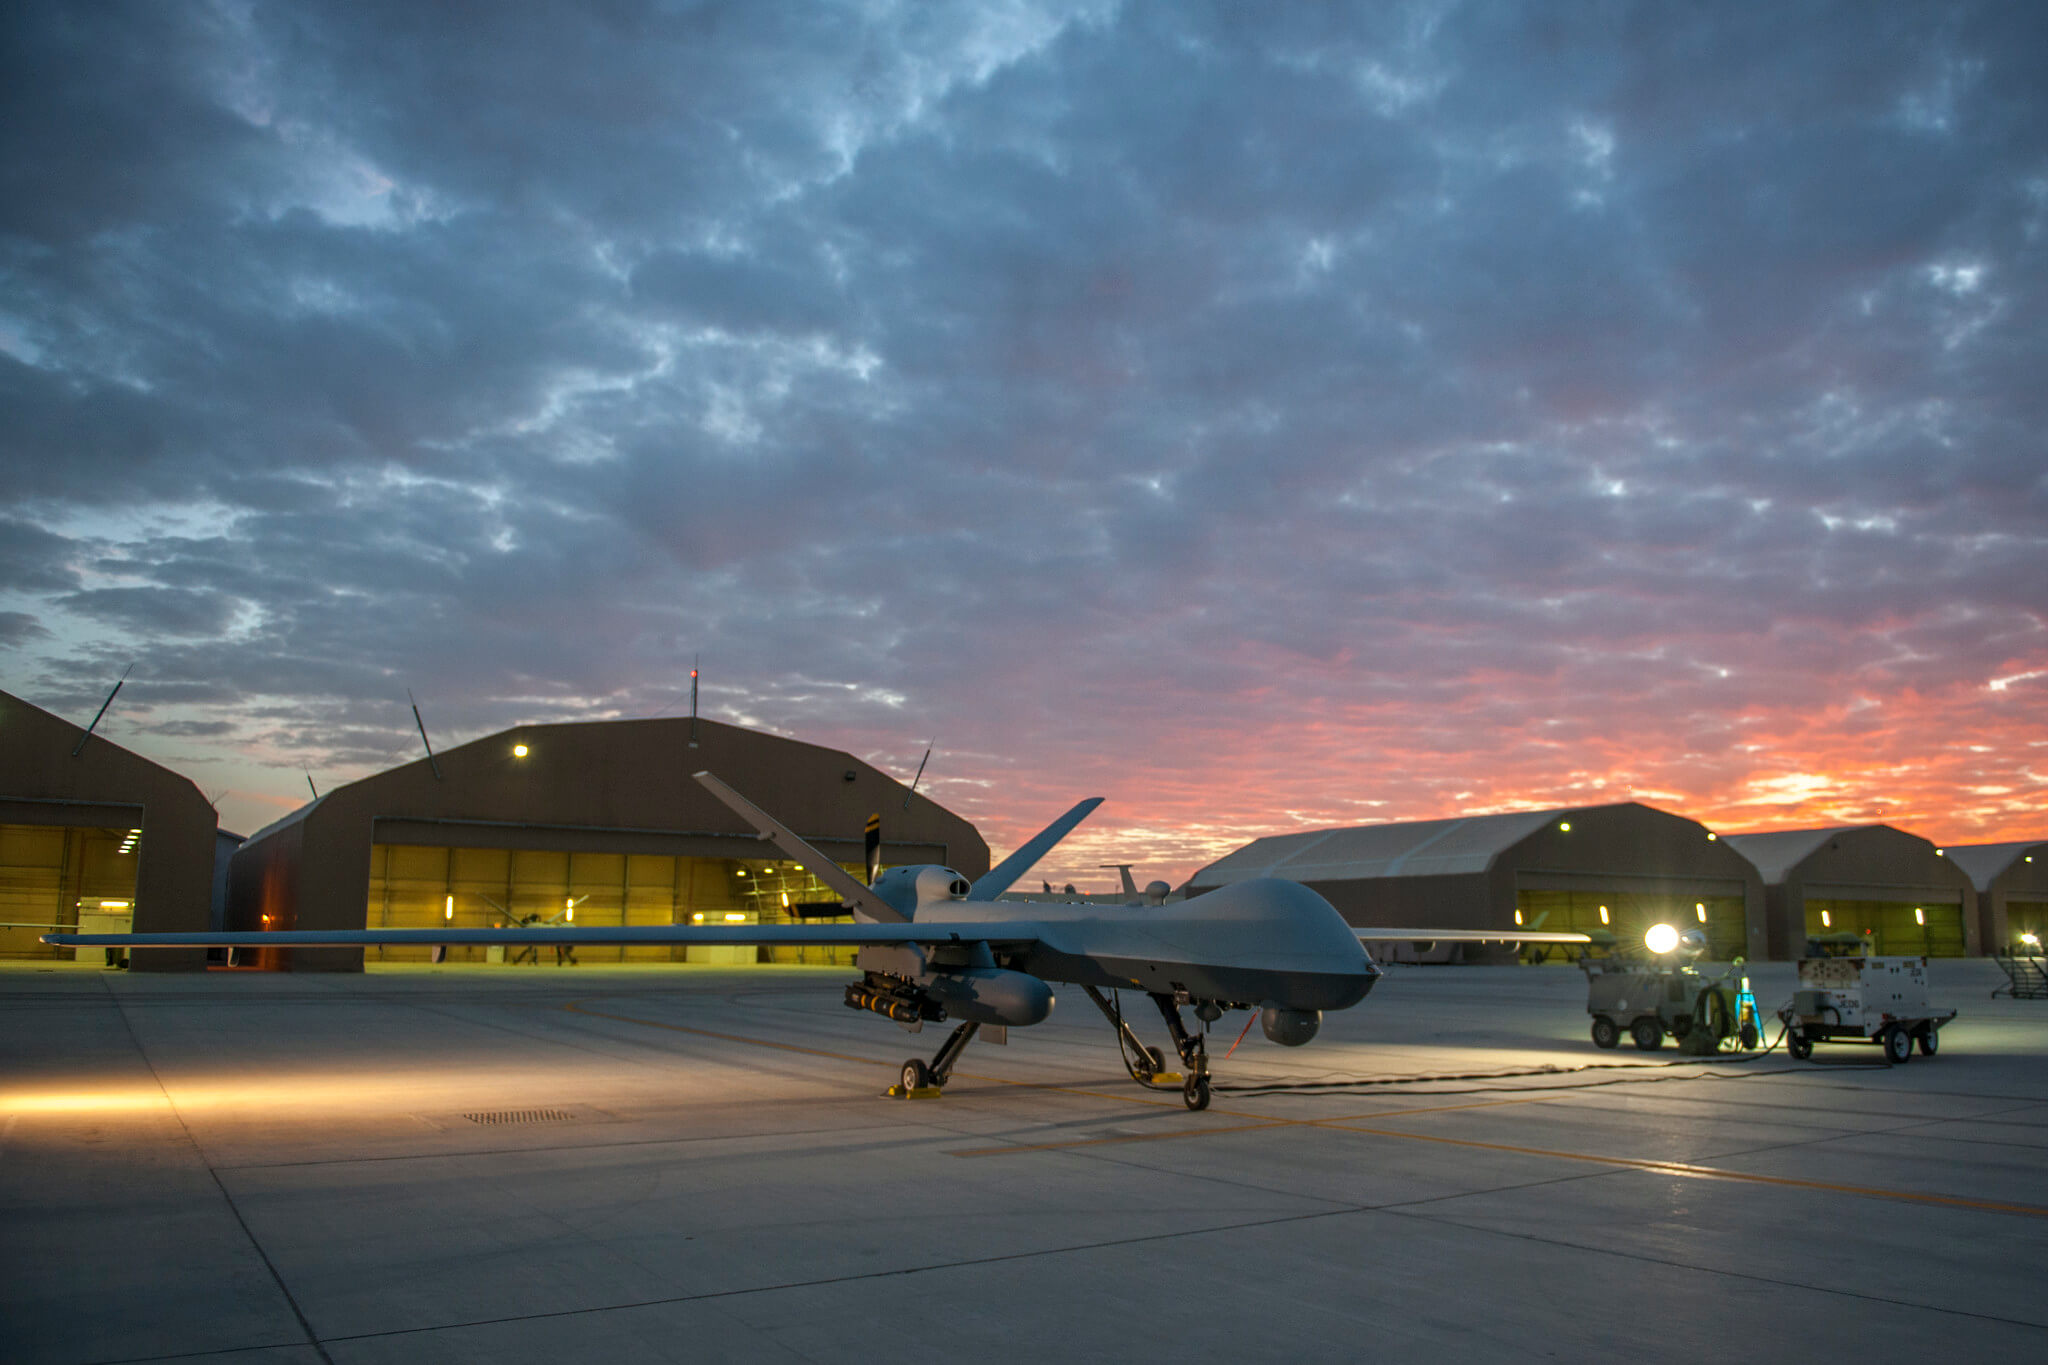 Een Amerikaanse MQ-9 reaper in 2015 op de luchtmachtbasis van Kandahar in Afghanistan. ©US Department of Defense